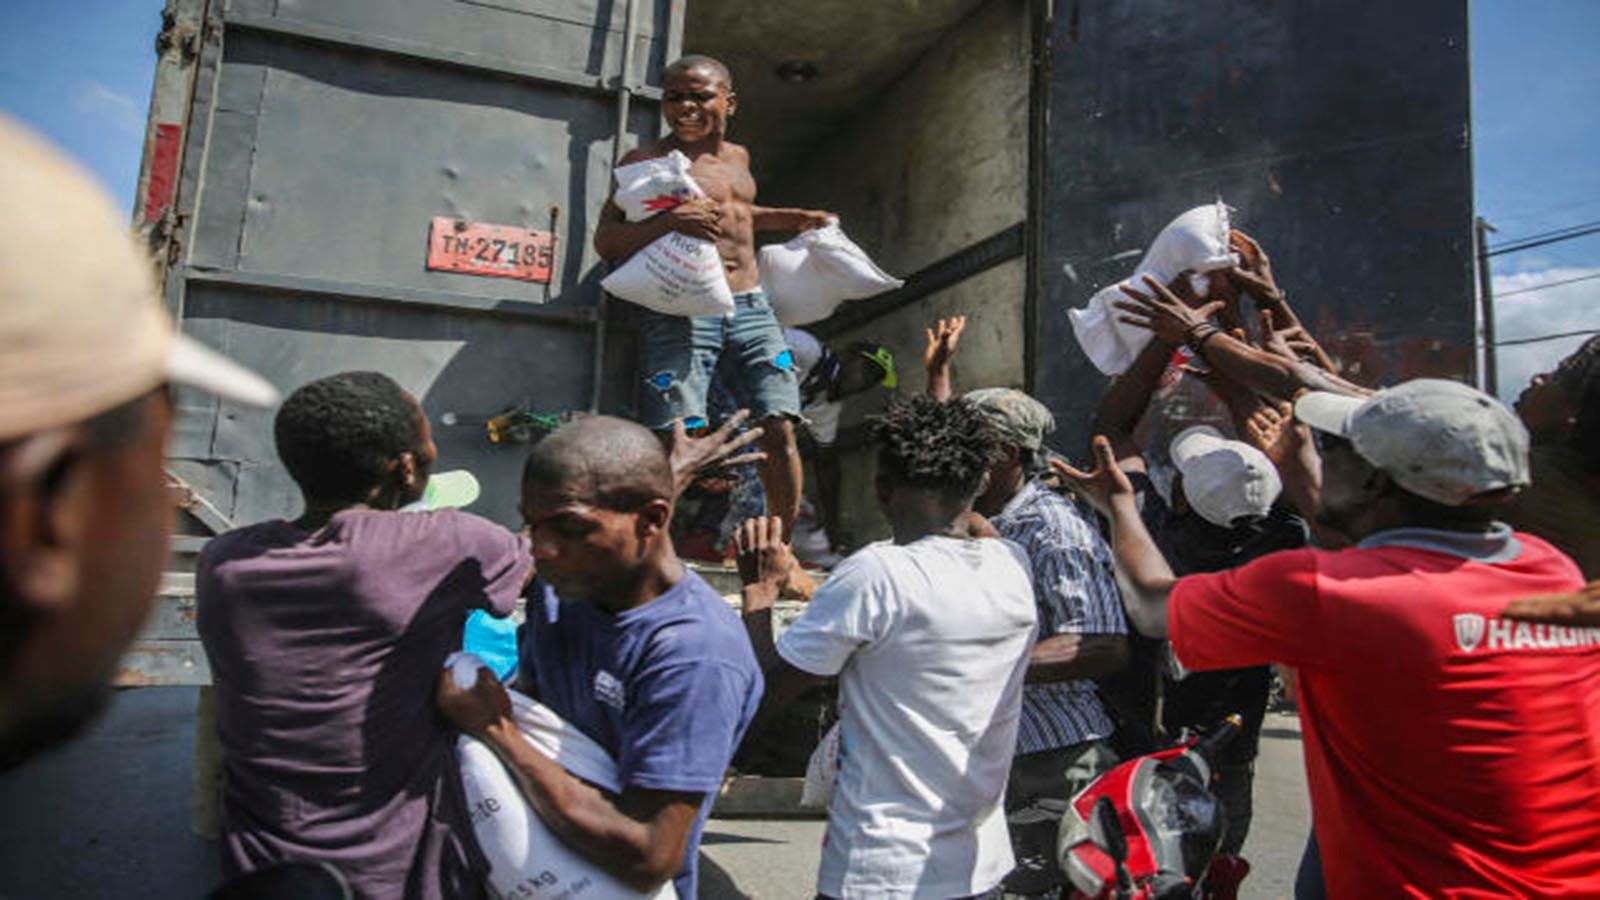 Haiti's troubled history may slow aid to earthquake victims photo from Yahoo News